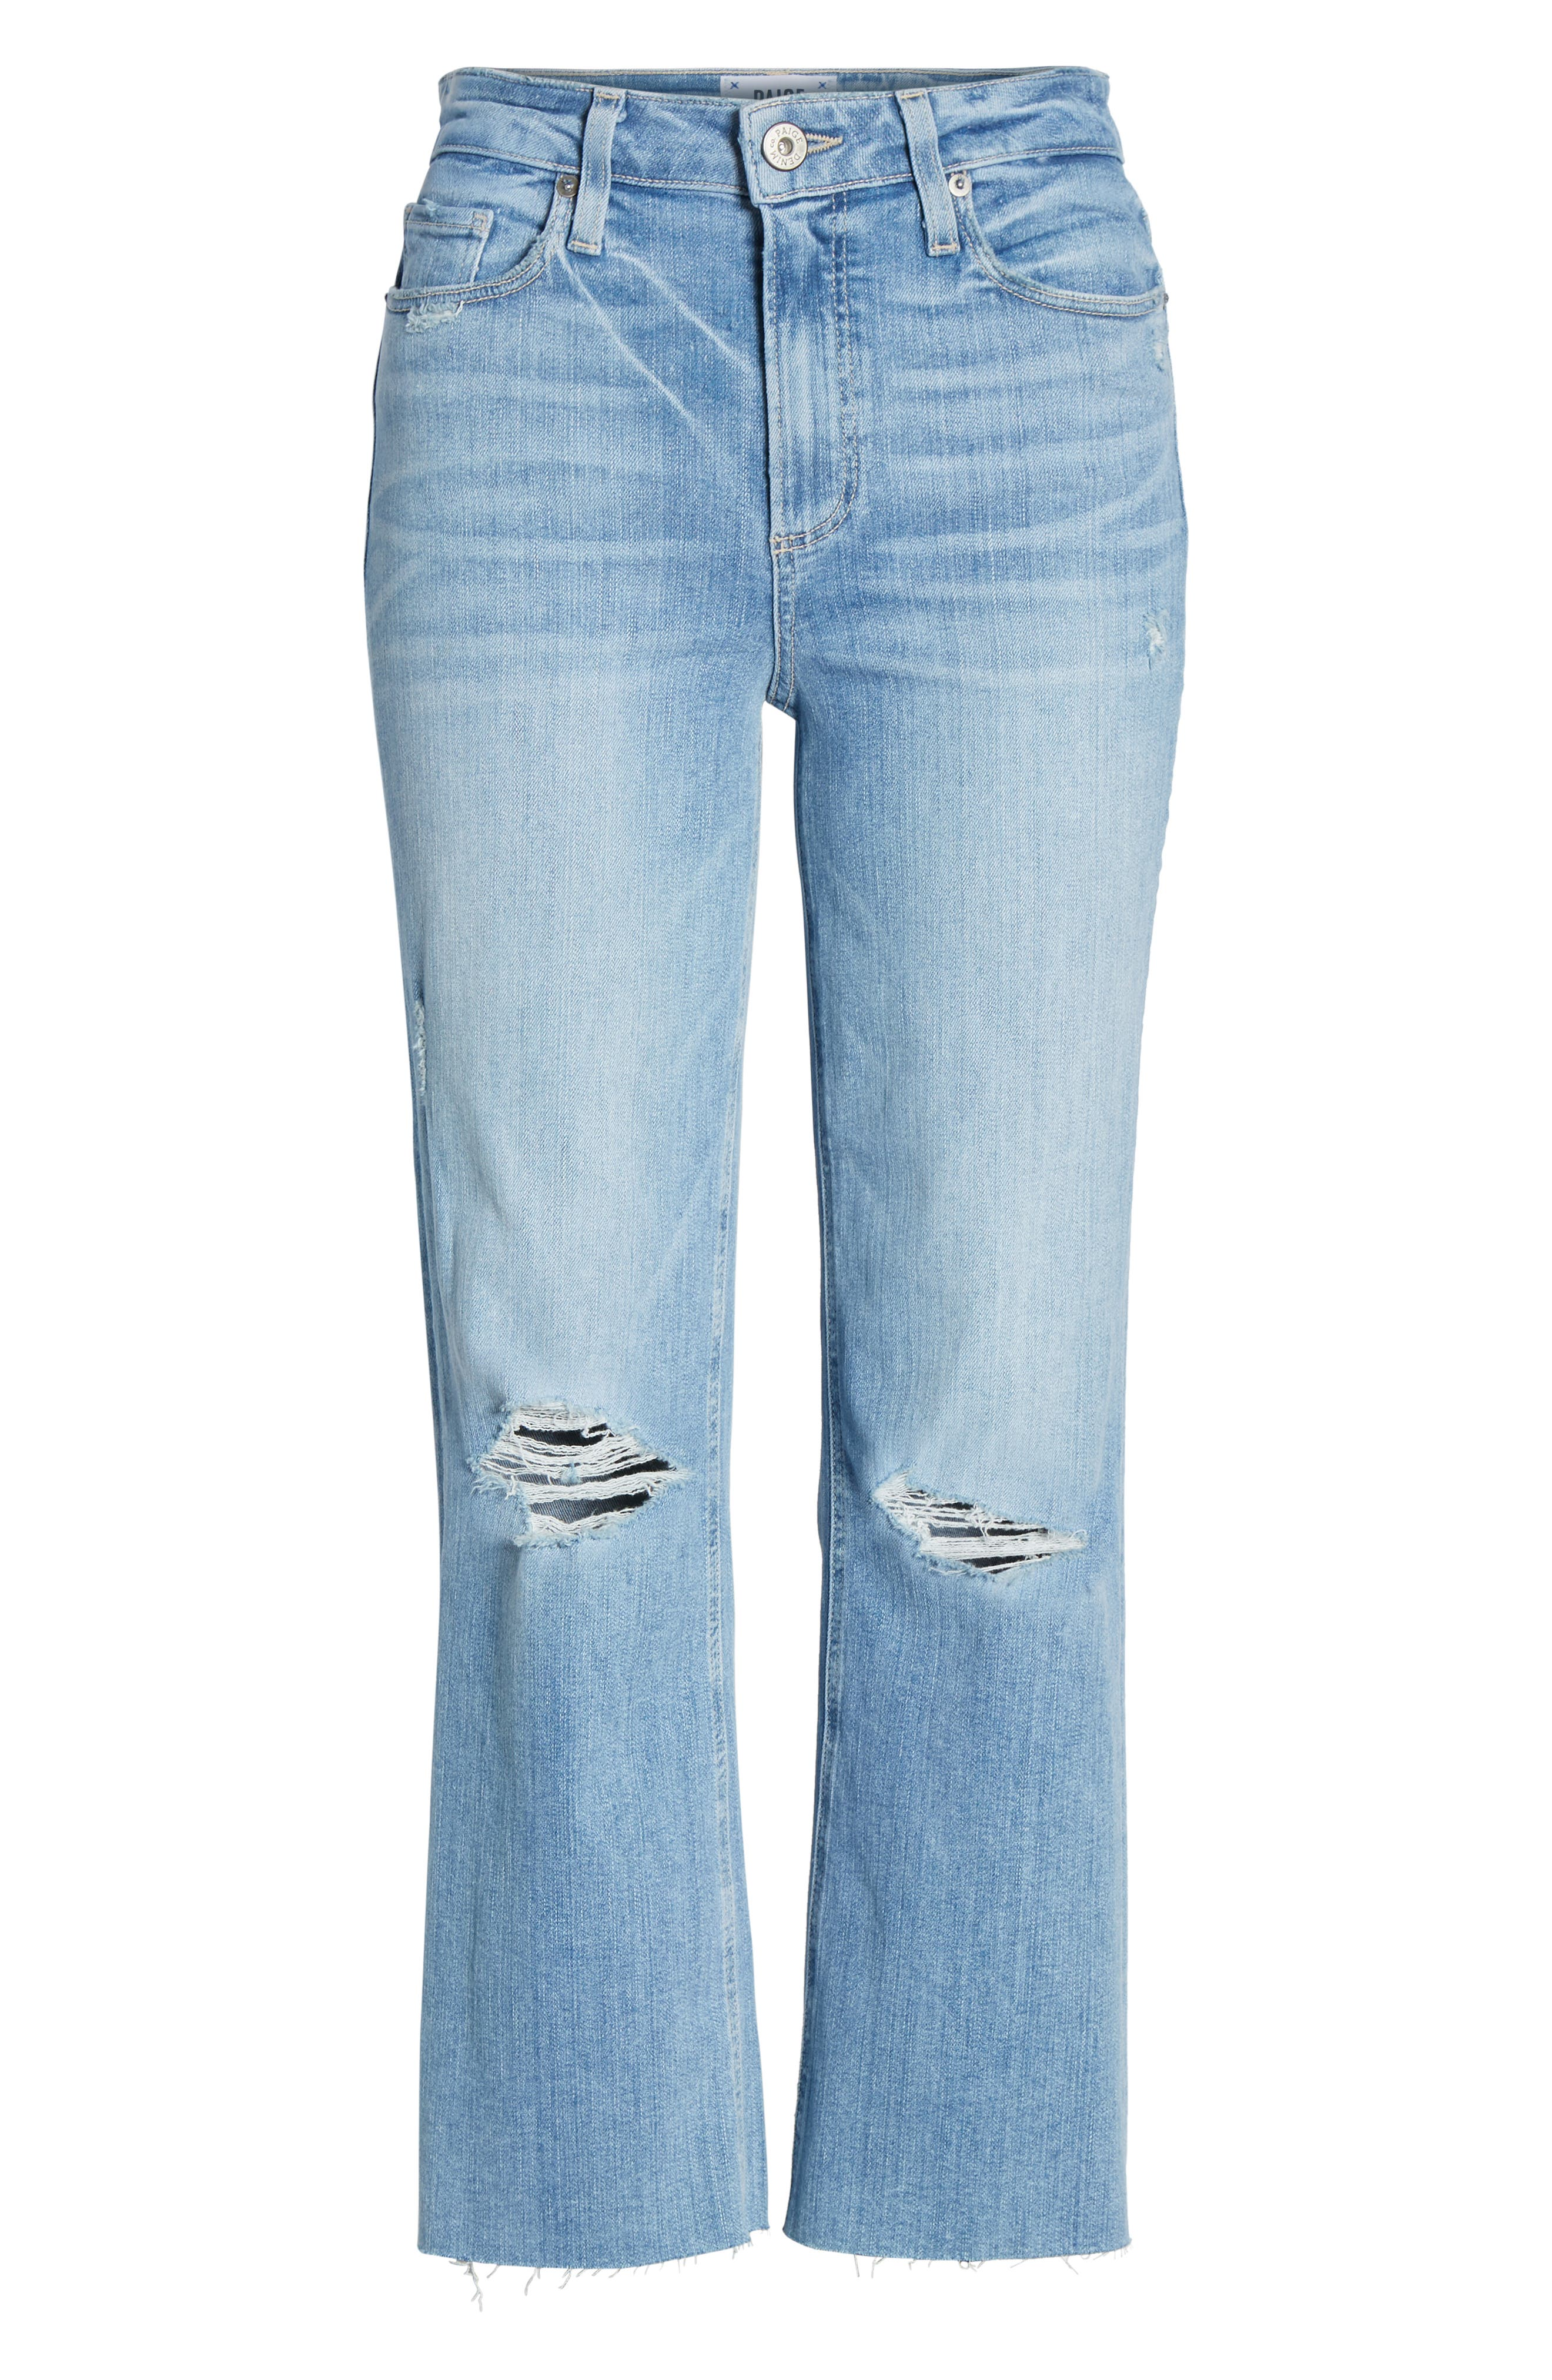 PAIGE, Atley Ripped Raw Hem Ankle Flare Jeans, Alternate thumbnail 7, color, FLORETTA DESTRUCTED